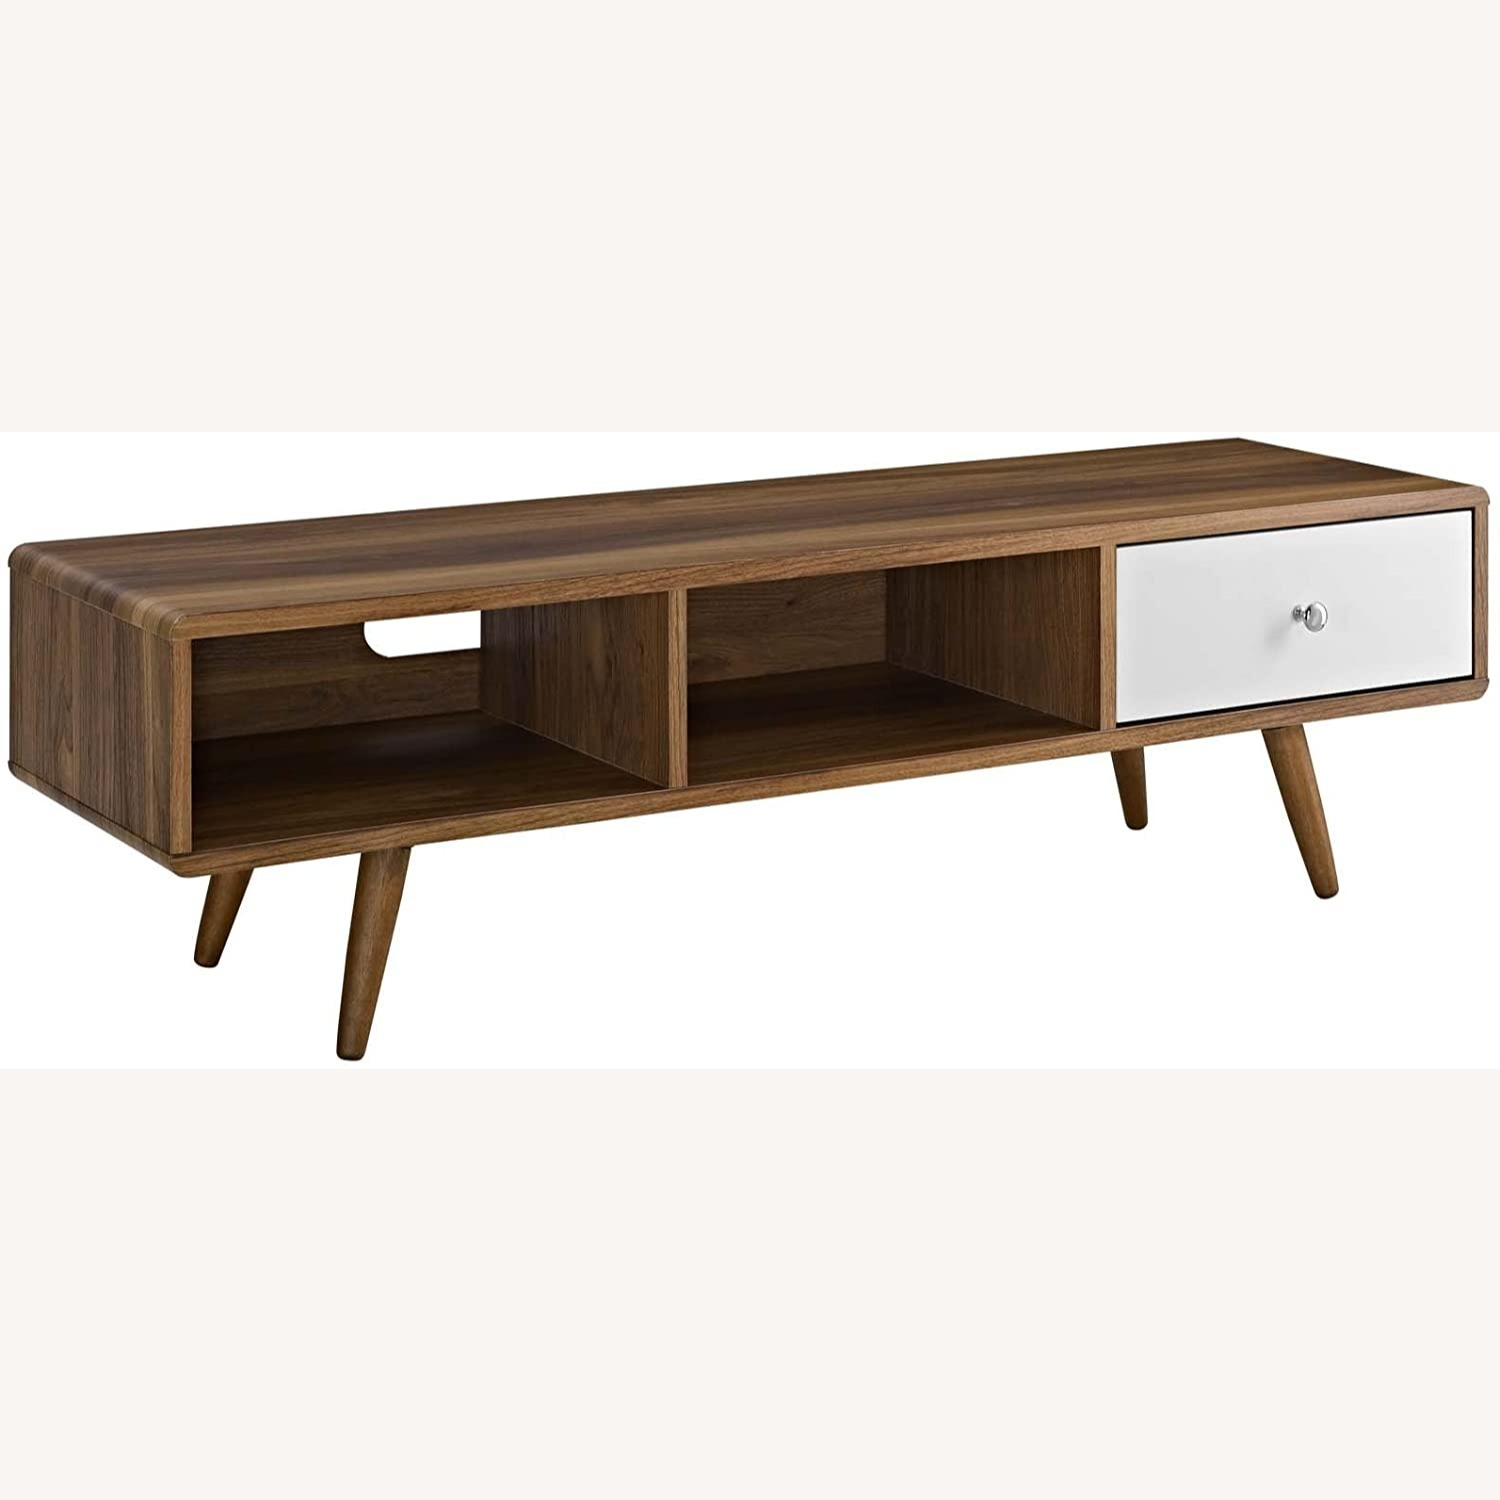 "Mid-Century Style TV Stand In 55"" Walnut Finish - image-0"